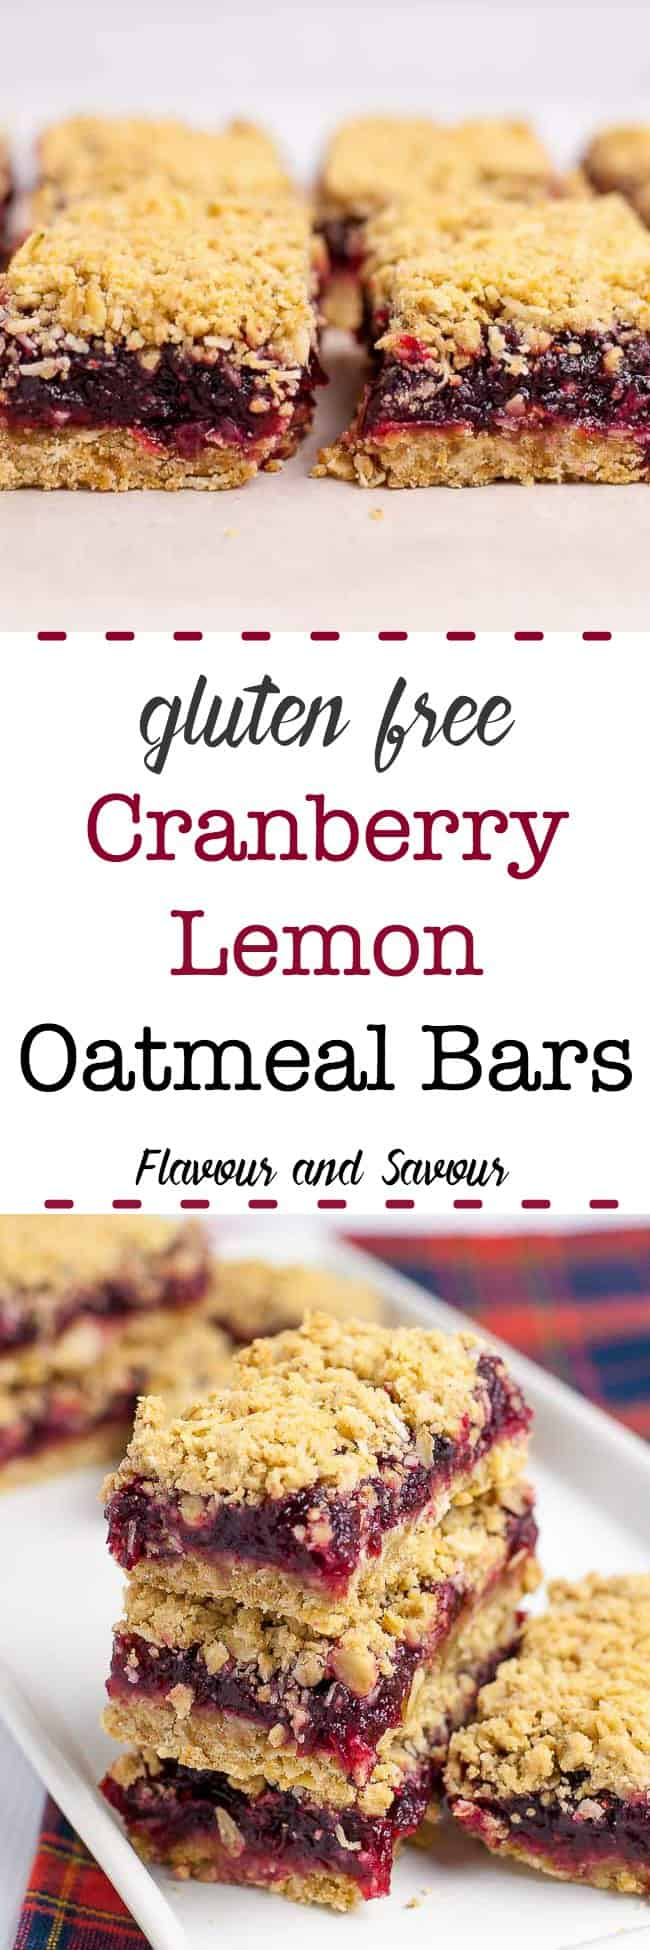 These gluten-free cranberry lemon oatmeal bars have just the right amount of sweetness, a buttery oatmeal base, and a crumbly coconut topping that puts them over the top. #glutenfree #cranberry #oatmeal #squares